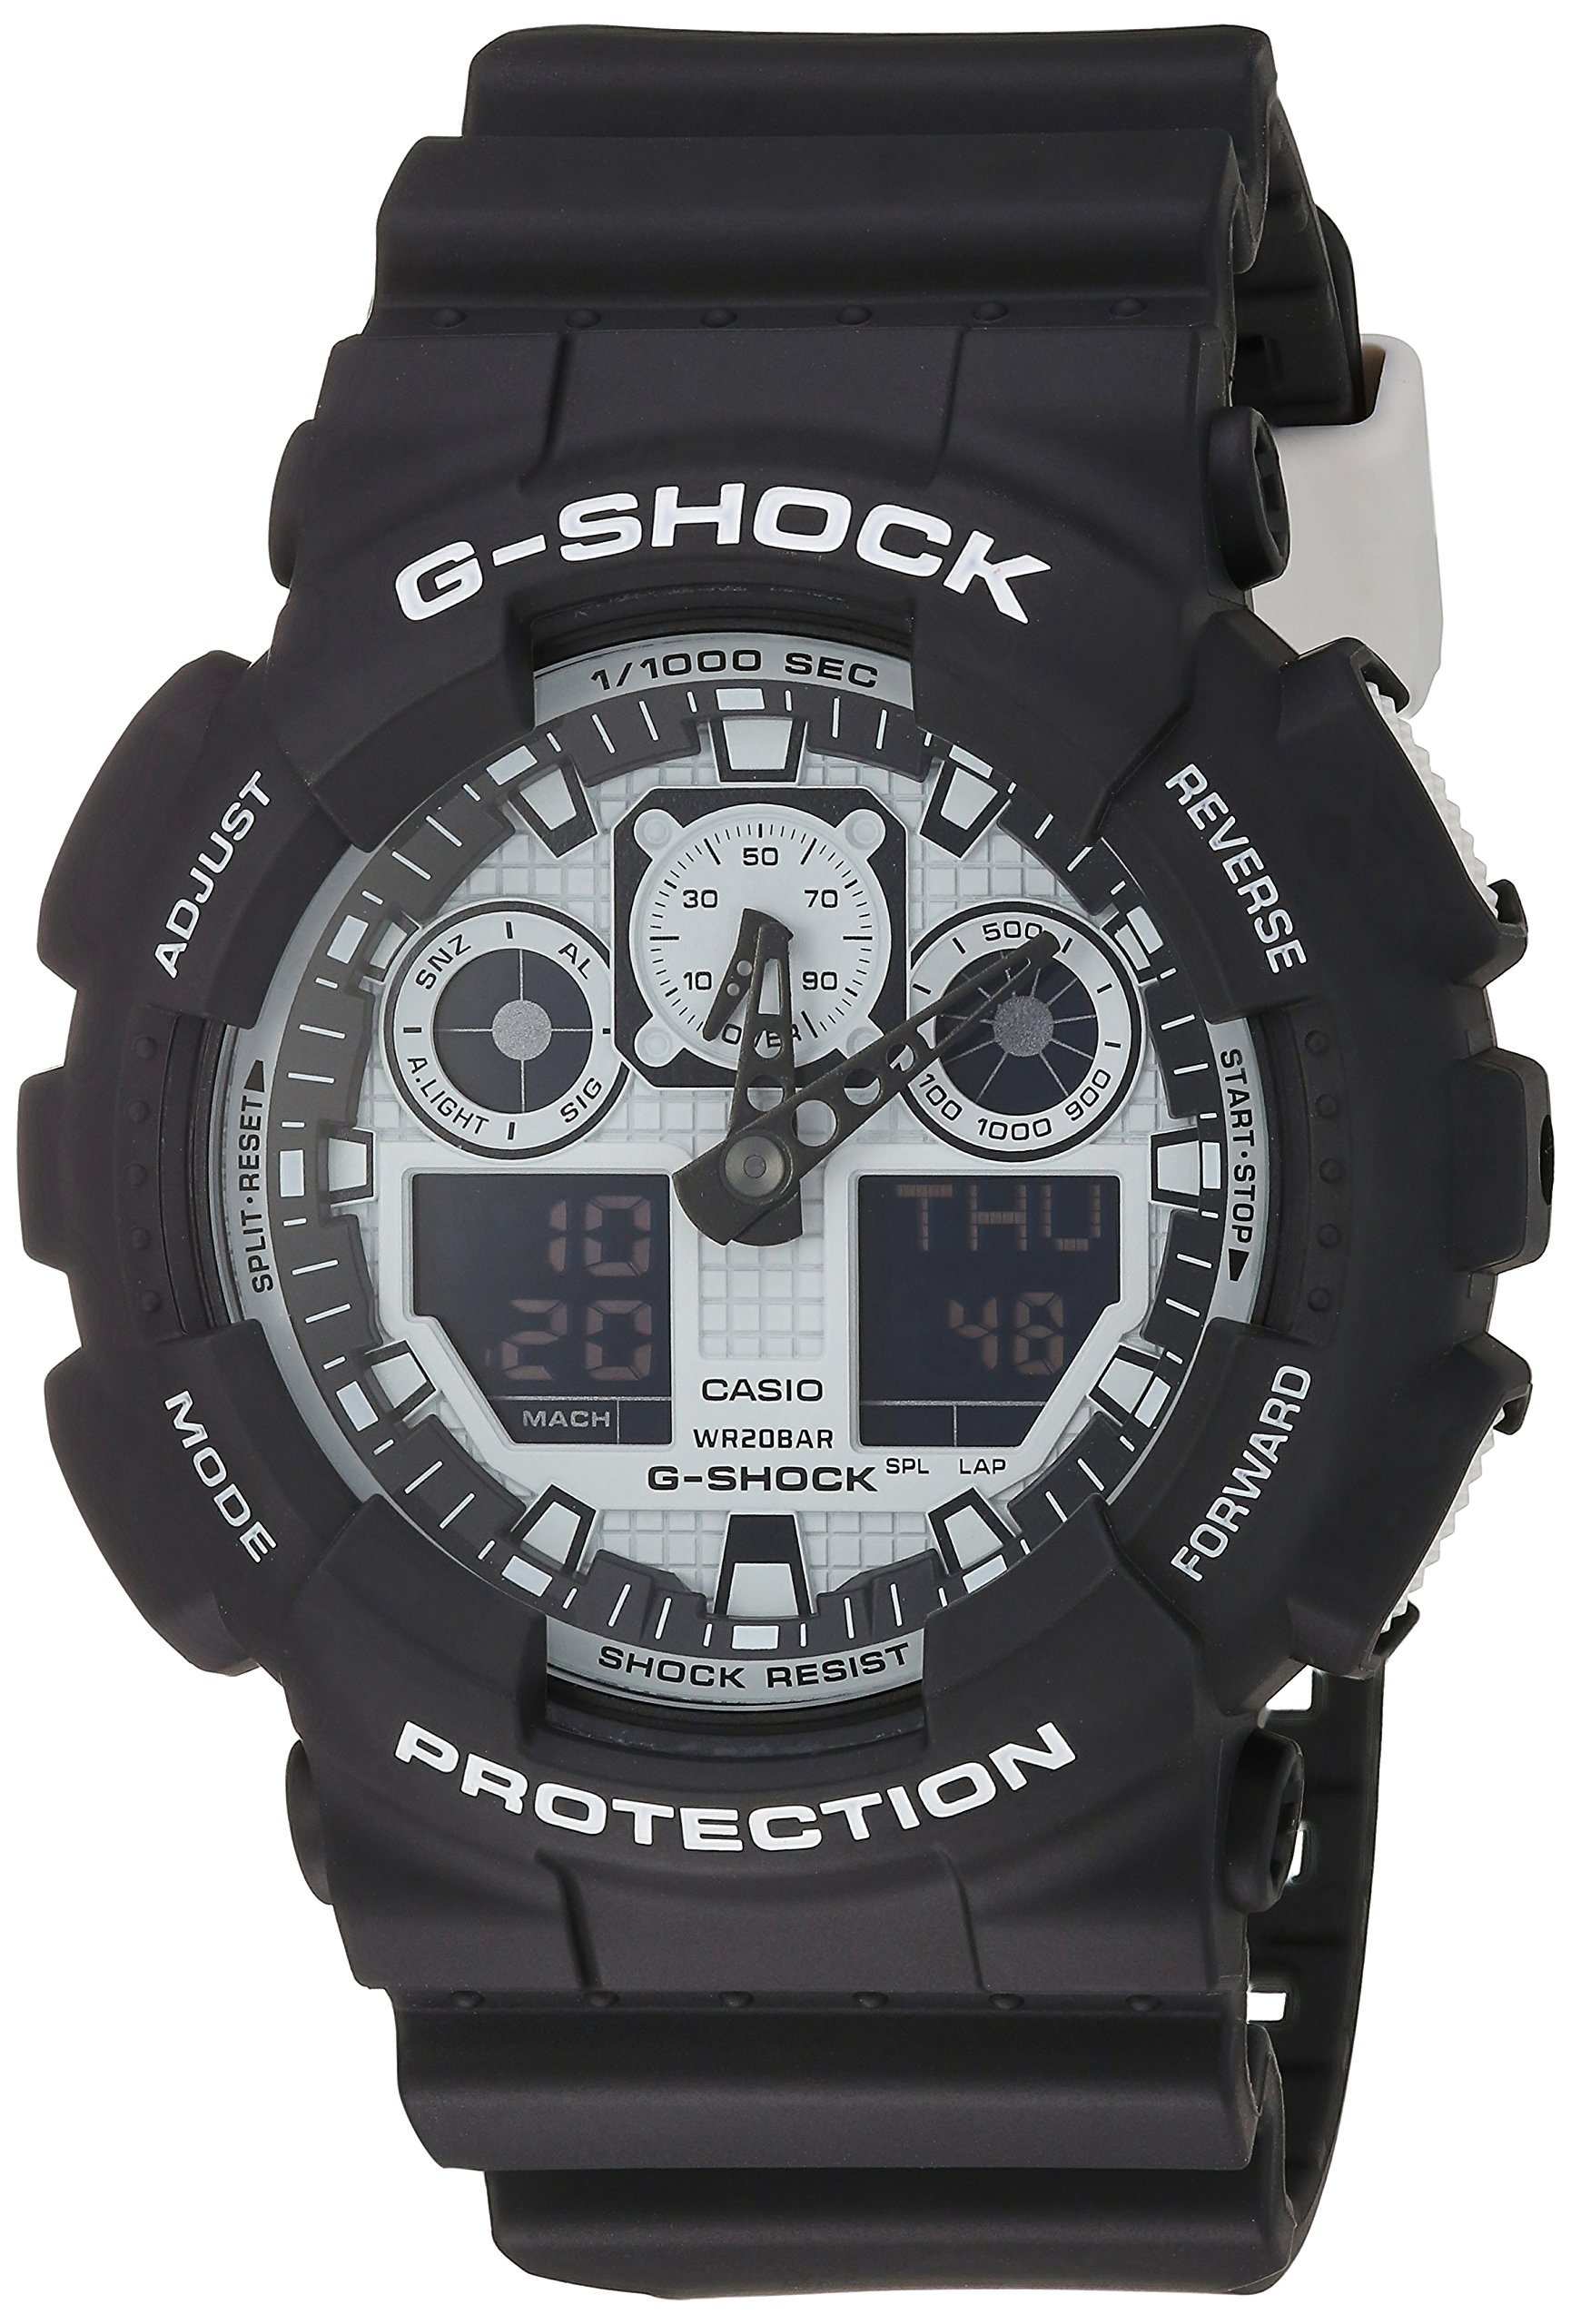 G-Shock GA-100BW-1A White and Black Series Luxury Watch - Black / One Size